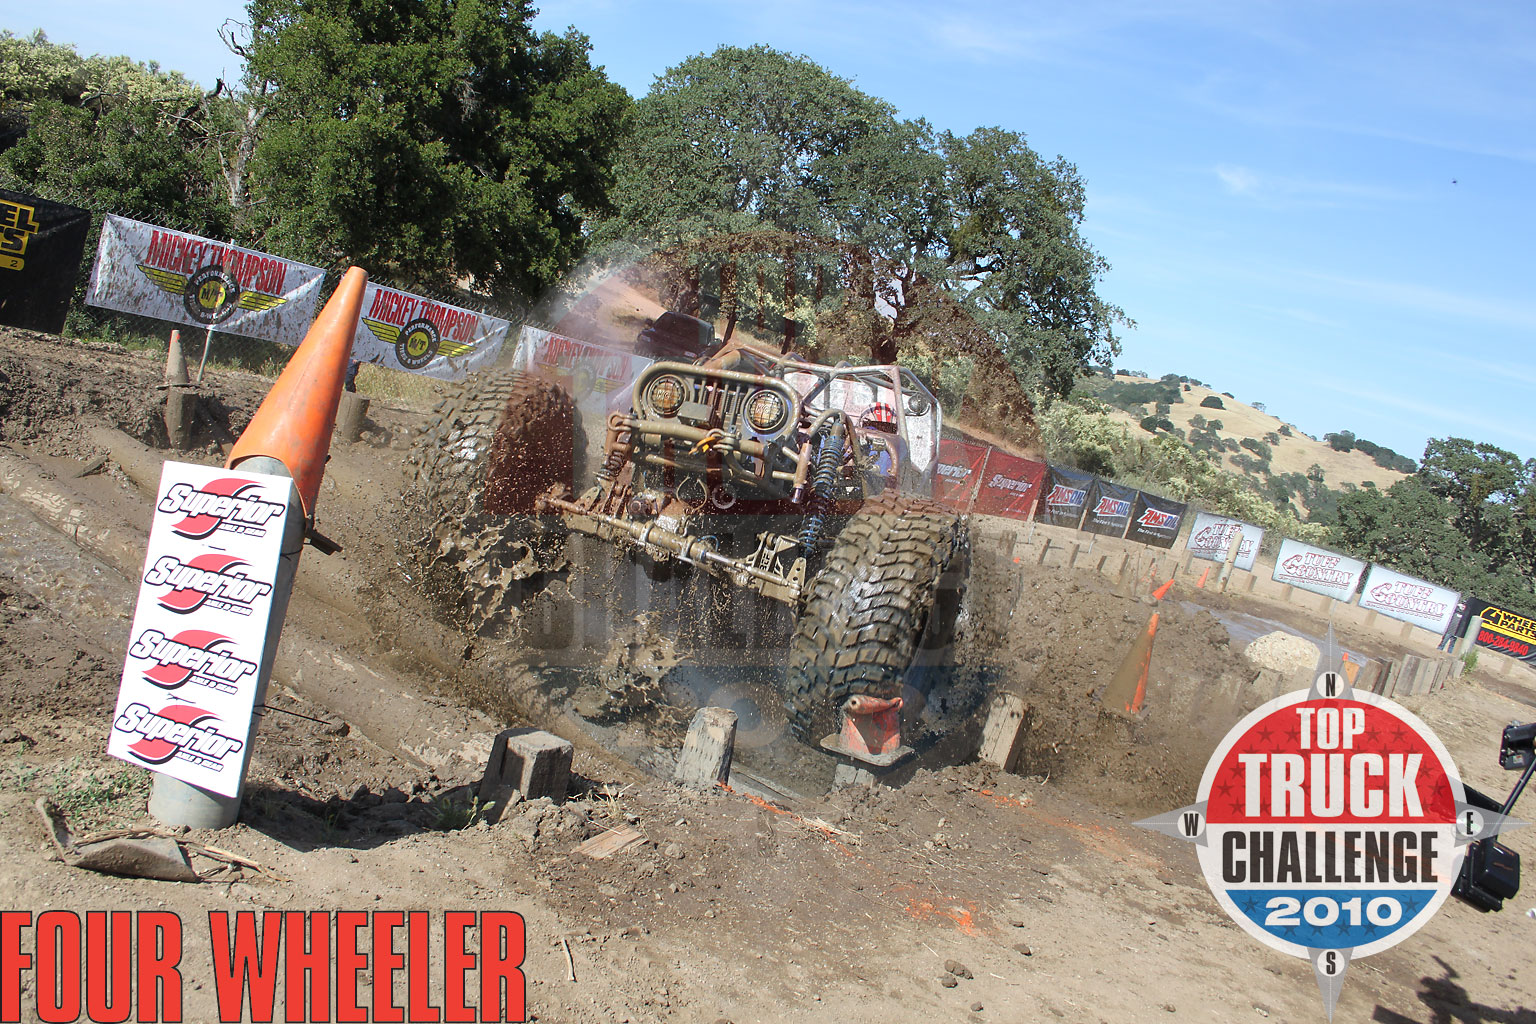 129 1006 4250+2010 top truck challenge frame twister+joe quichocho tube chassis cj7 buggy